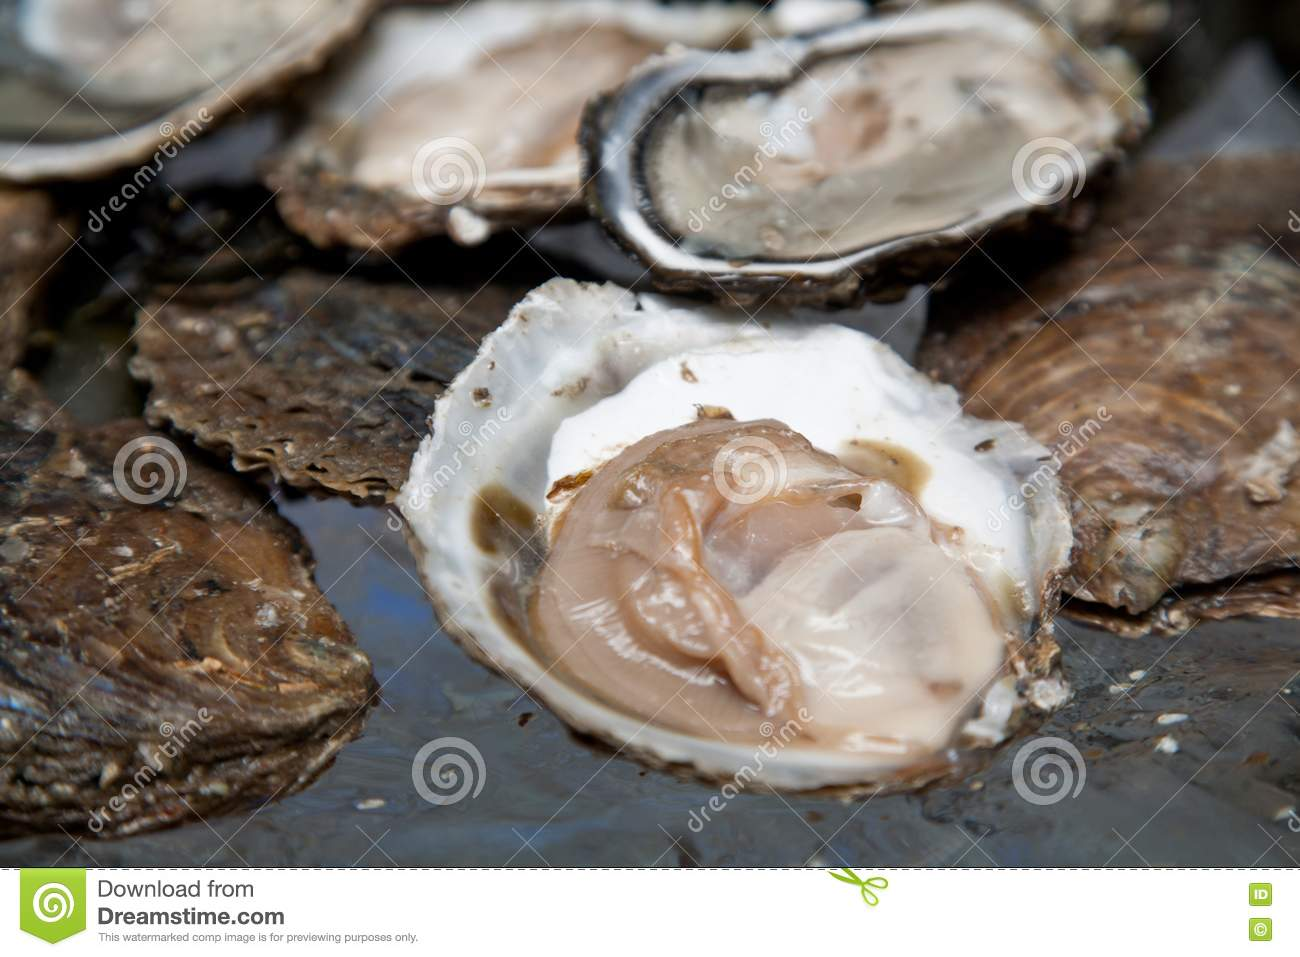 Fresh raw oysters - photo#16